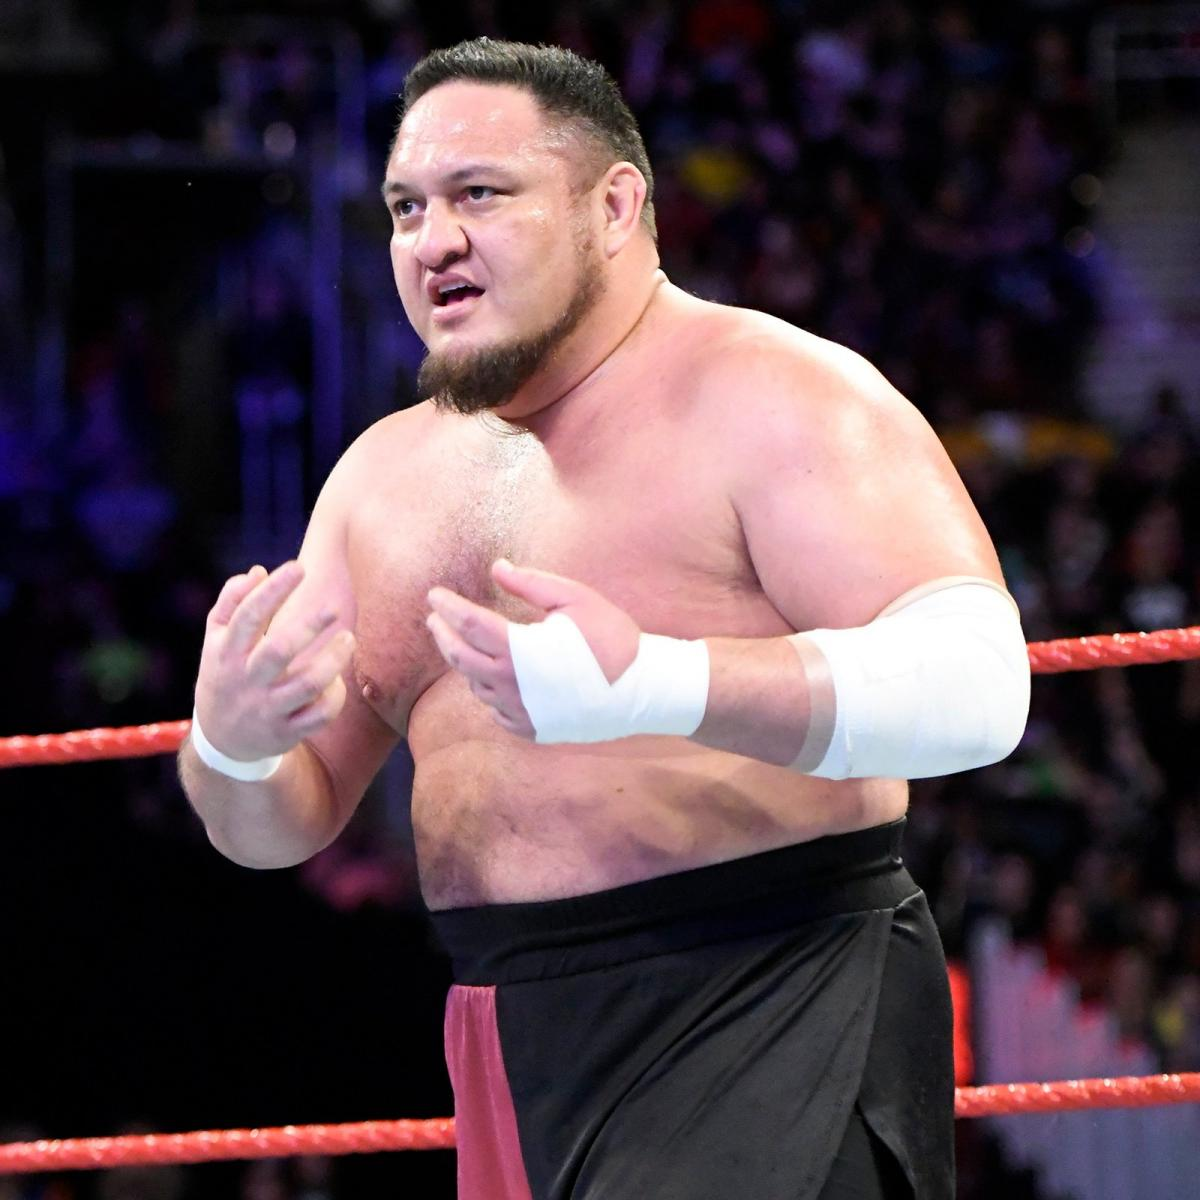 When Can We Expect To See Samoa Joe Back On WWE Programming?